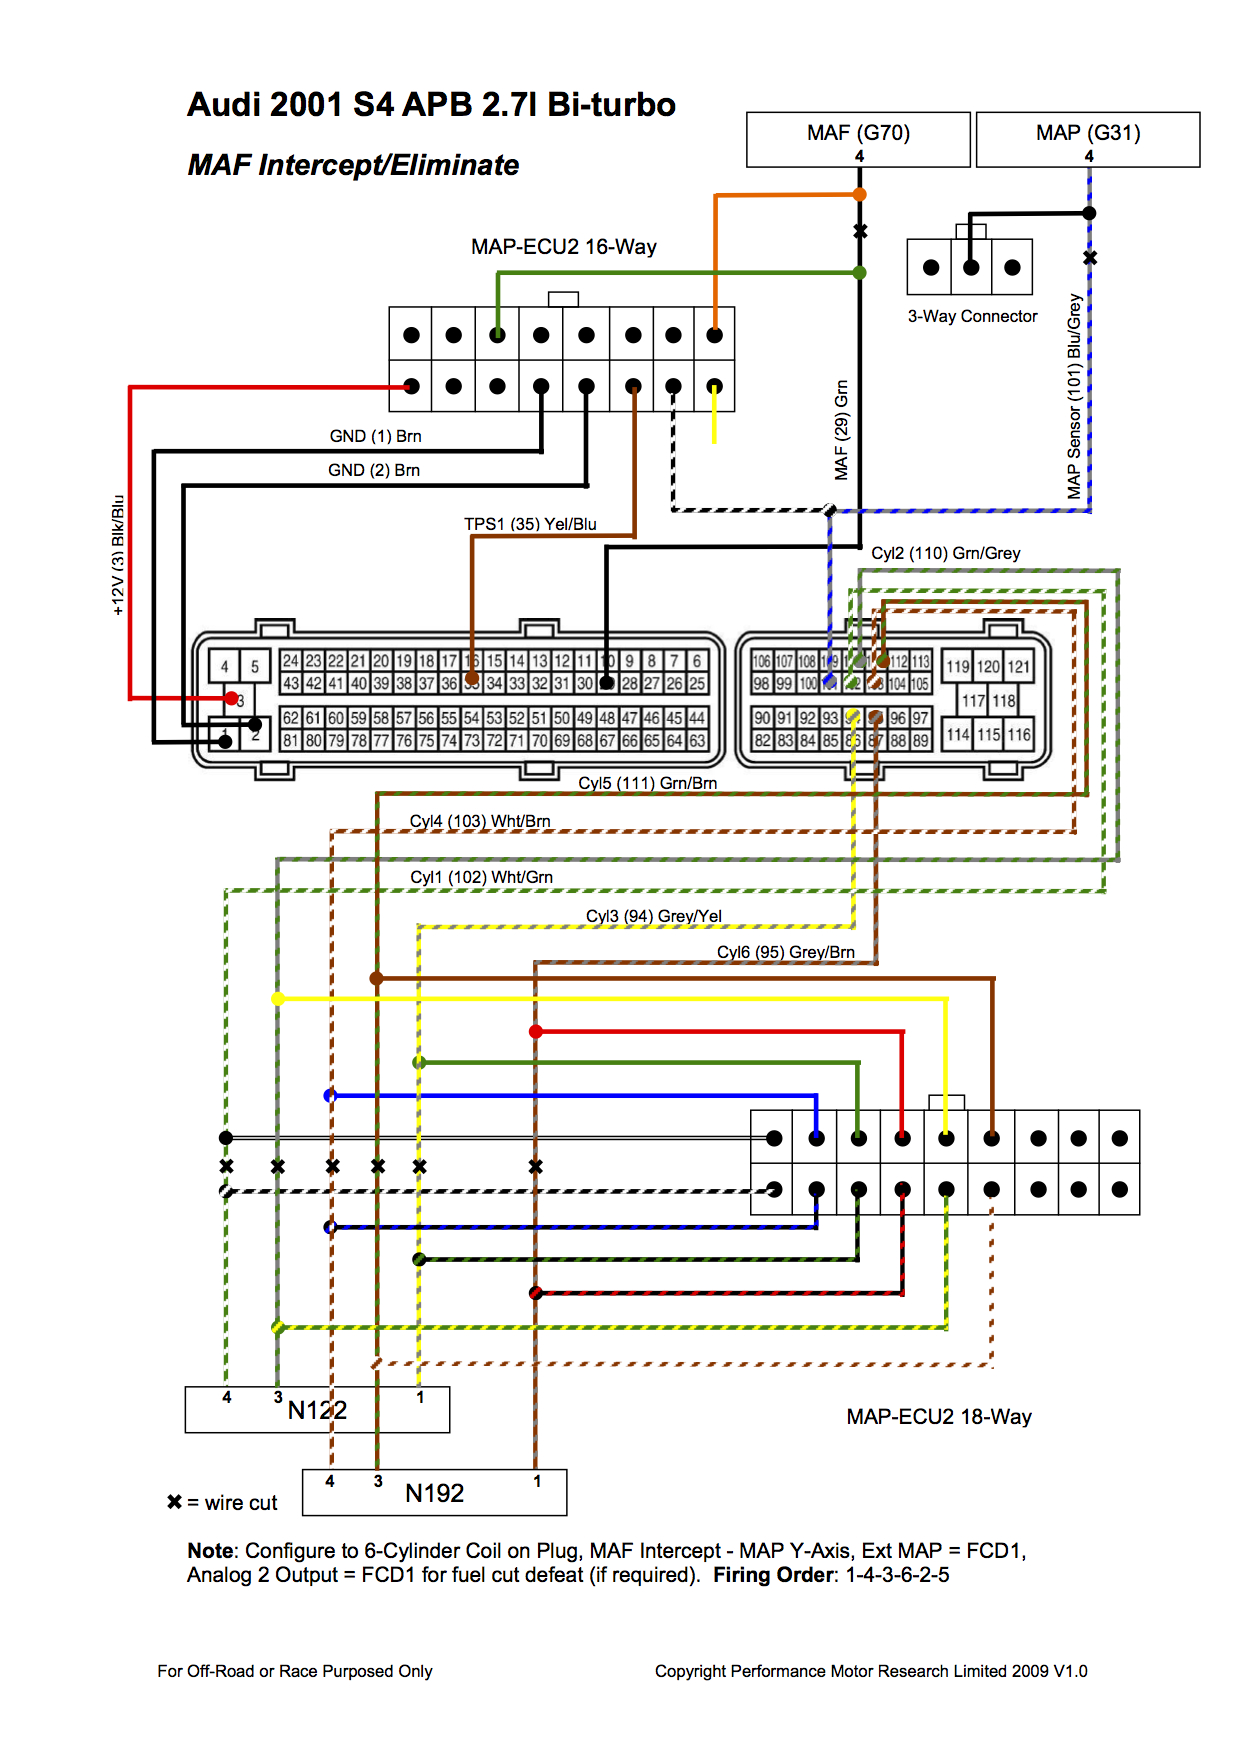 Audi S4 20011 ecu wiring diagram mini cooper ecu wiring diagram \u2022 wiring Grand National Trunk Wiring at couponss.co